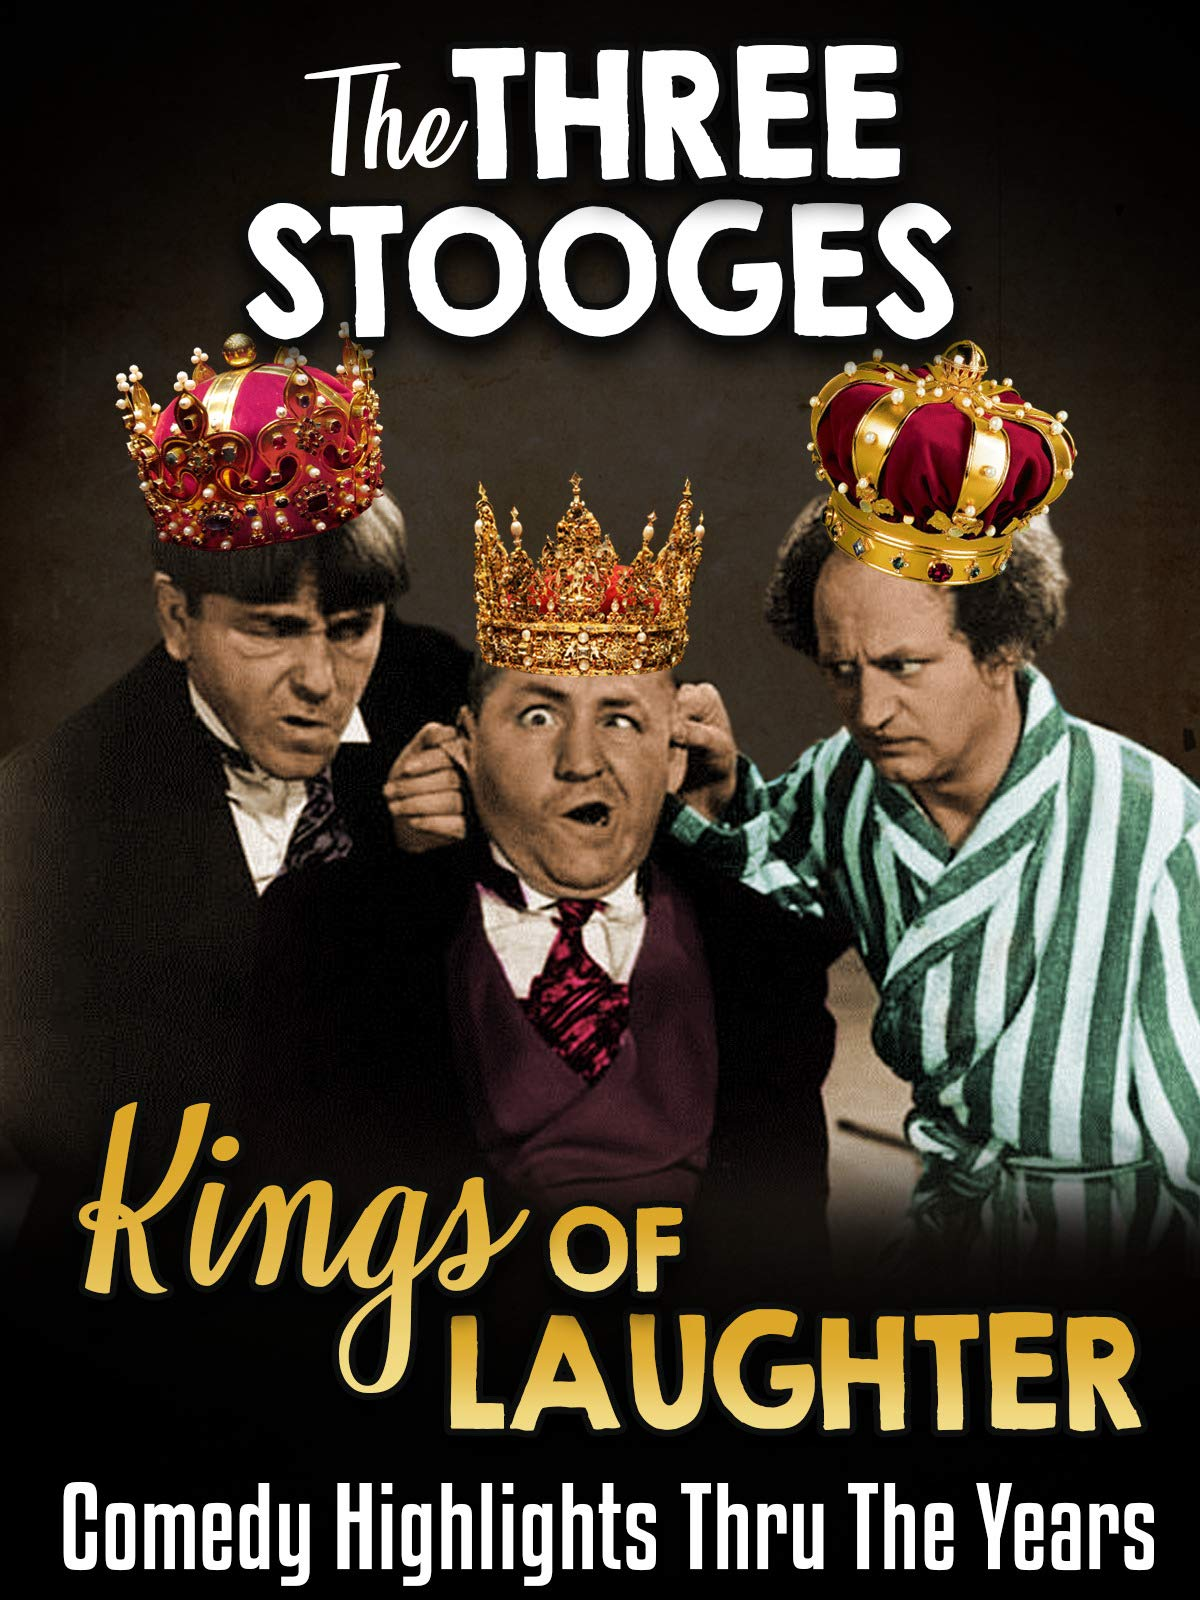 The Three Stooges, Kings of Laughter - Comedy Highlights Thru The Years on Amazon Prime Video UK